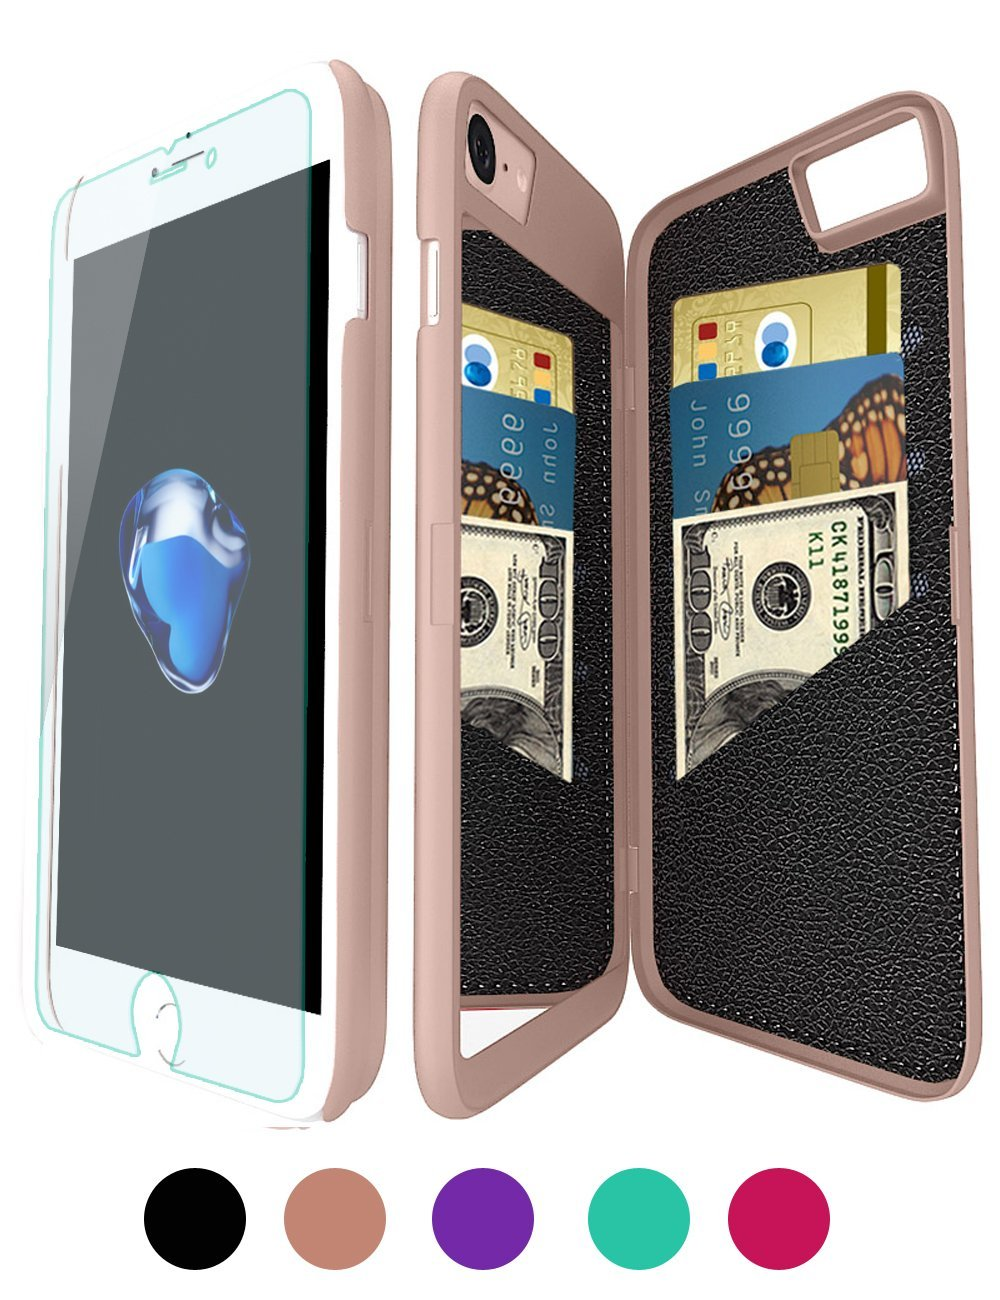 Mirror Wallet Case for iPhone 7/iPhone 8  4.7 Inches, iPhone 7/iPhone 8 Protective Hard Cover Case with Card Slot and Kickstand feature for Women 12